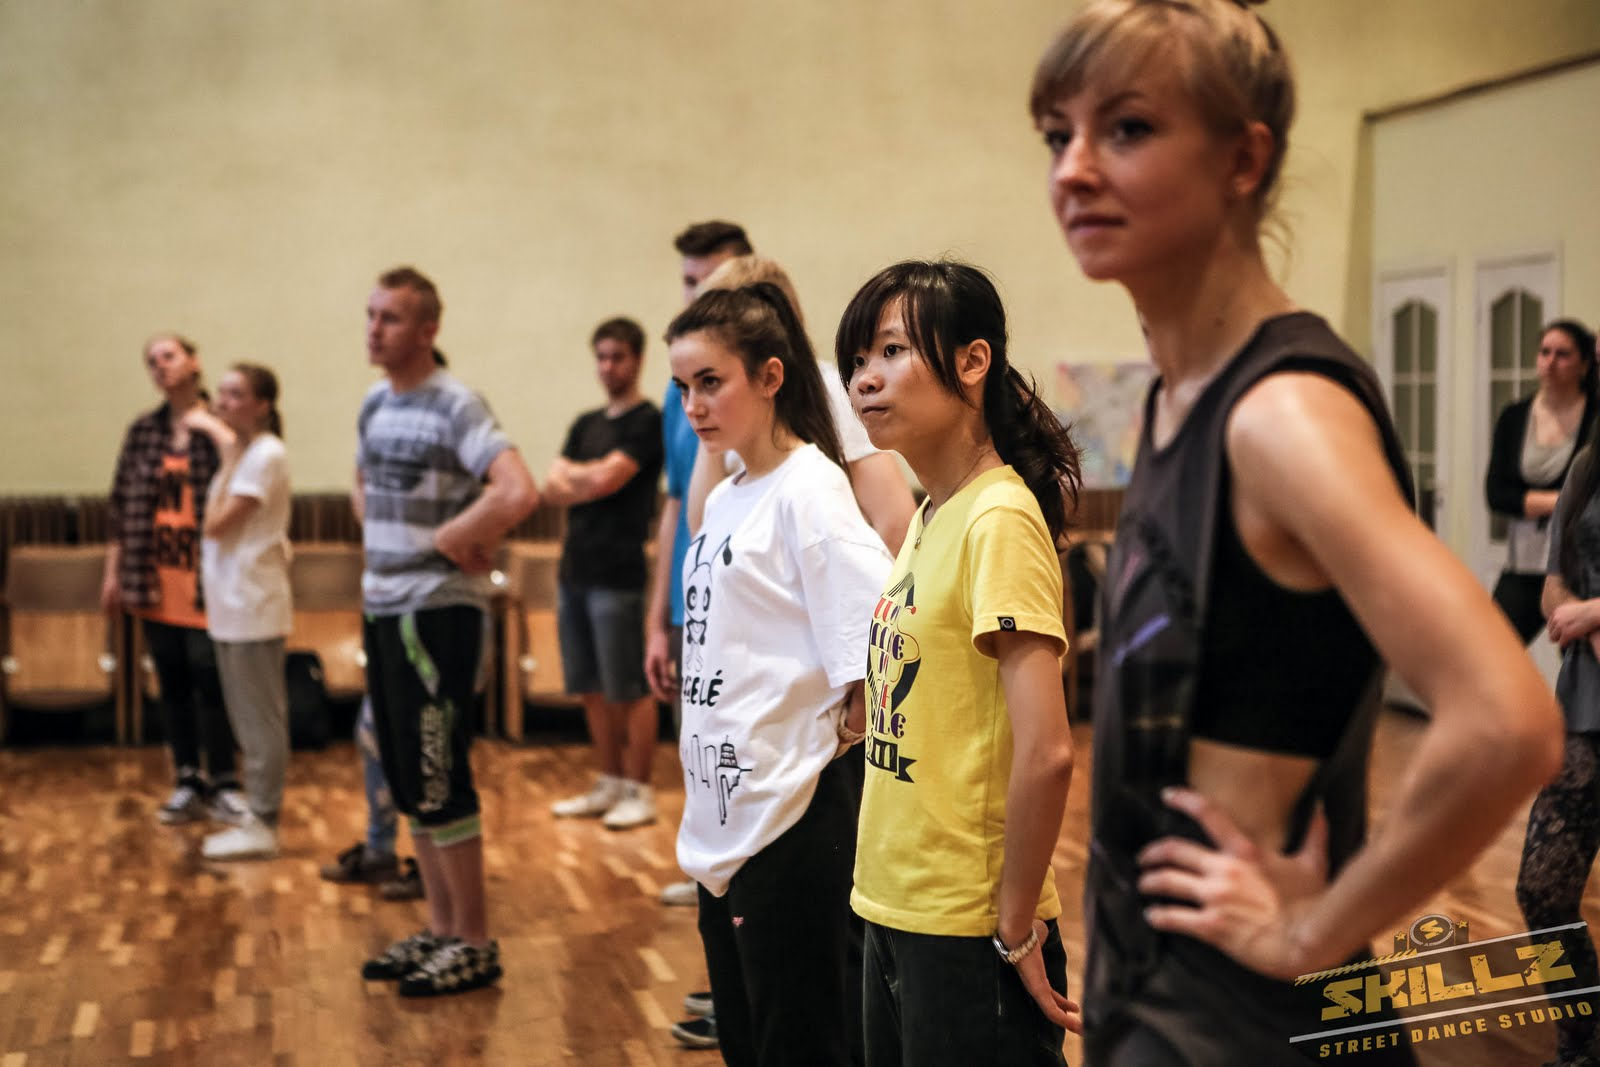 Workshop with Kusch (Russia) - IMG_4797.jpg